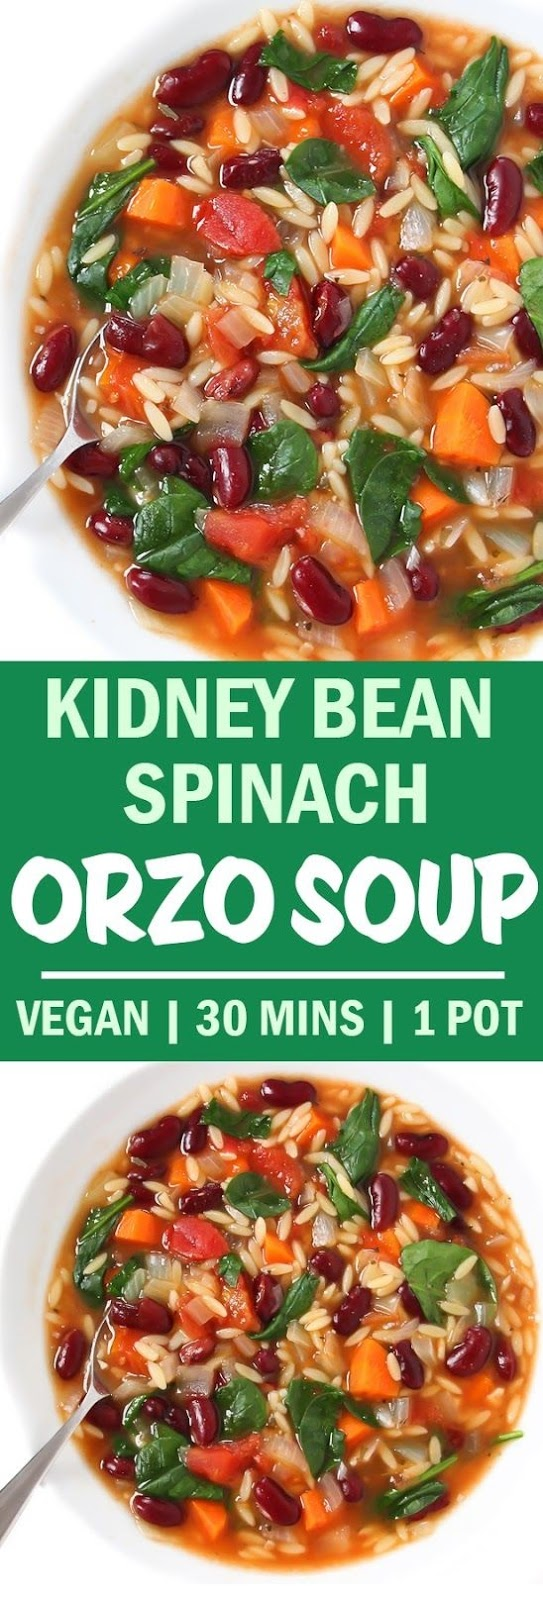 Kidney Bean, Spinach, & Orzo Soup